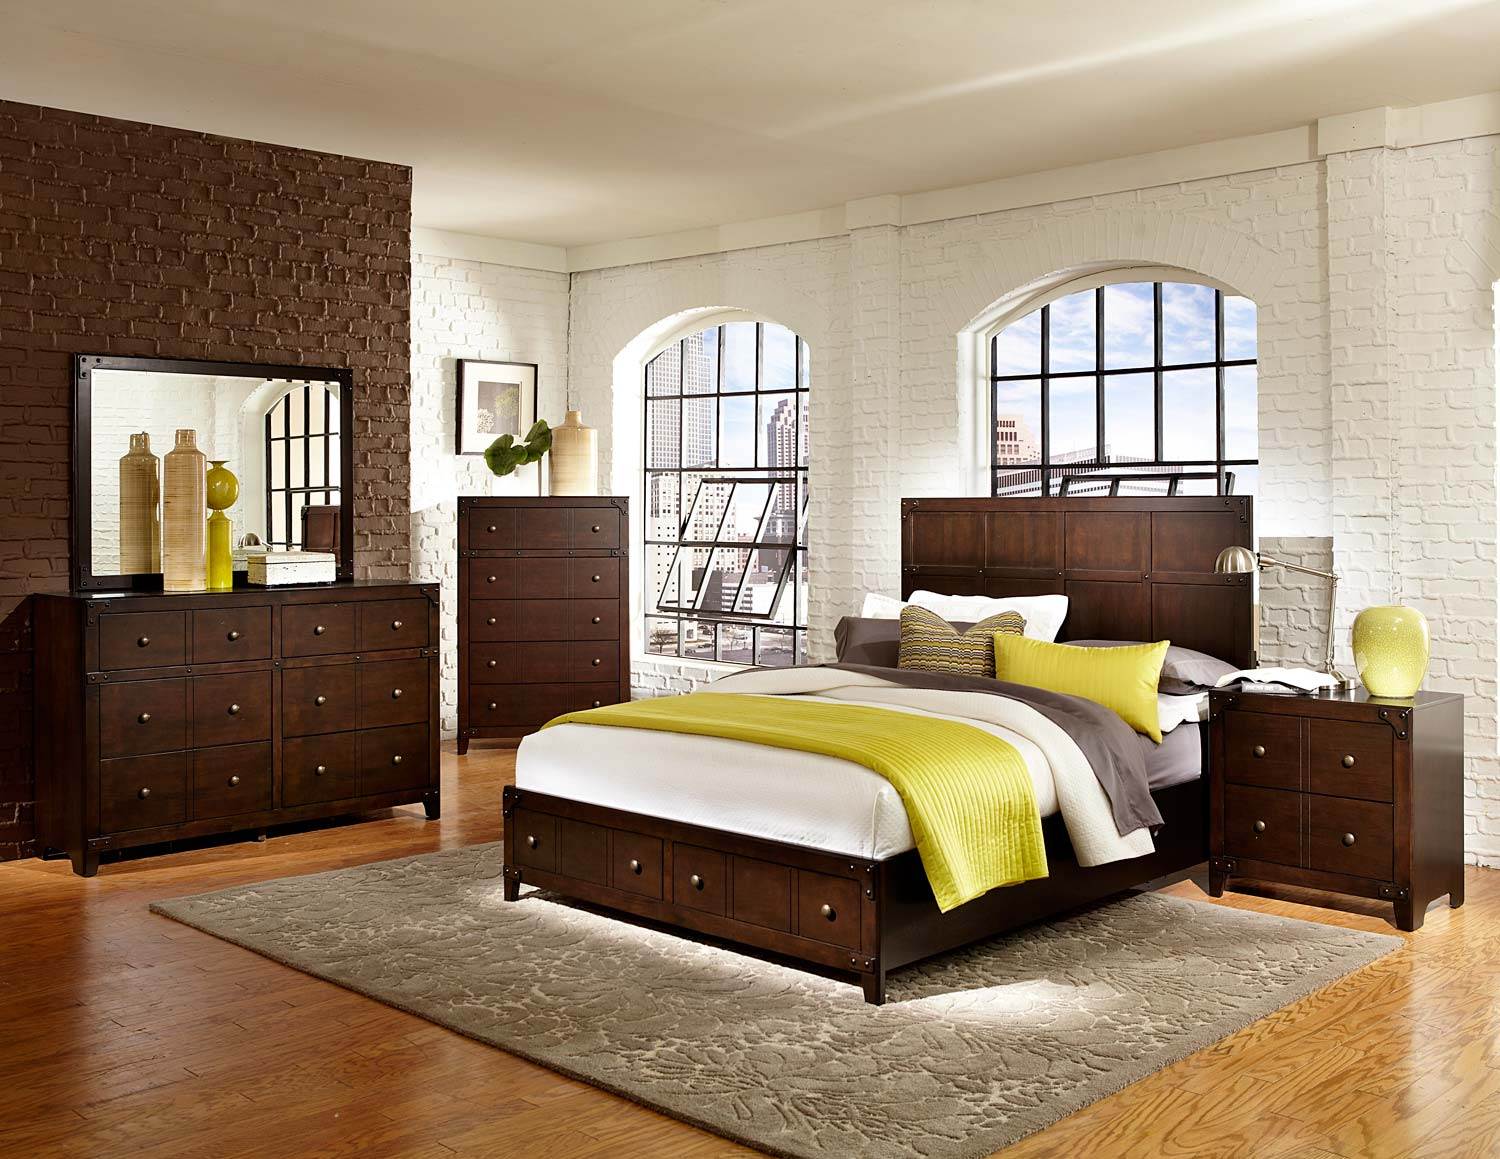 Homelegance Brawley Platform Bedroom Set - Brown Cherry